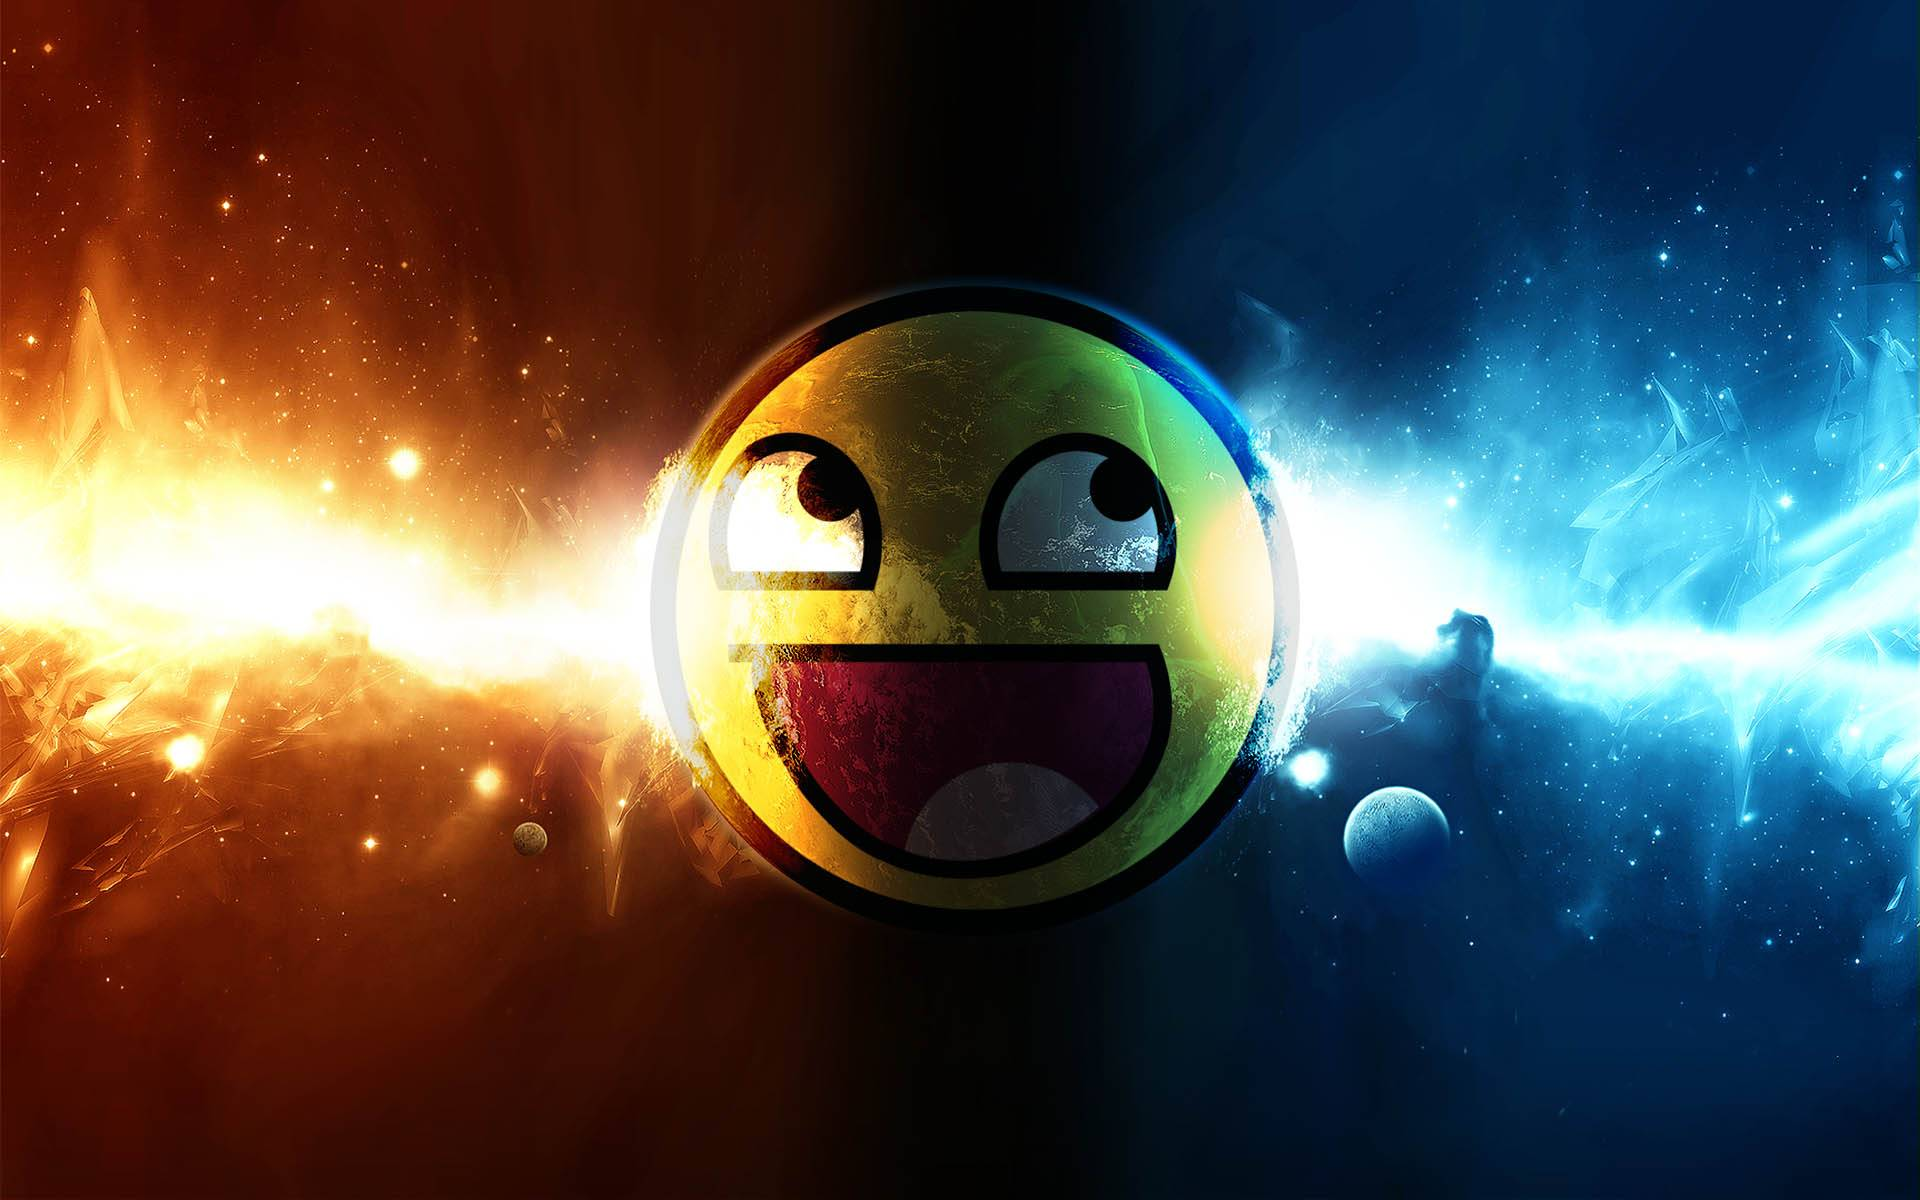 Awesome Smiley Background 2225 Hd Wallpapers in Others   Imagescicom 1920x1200